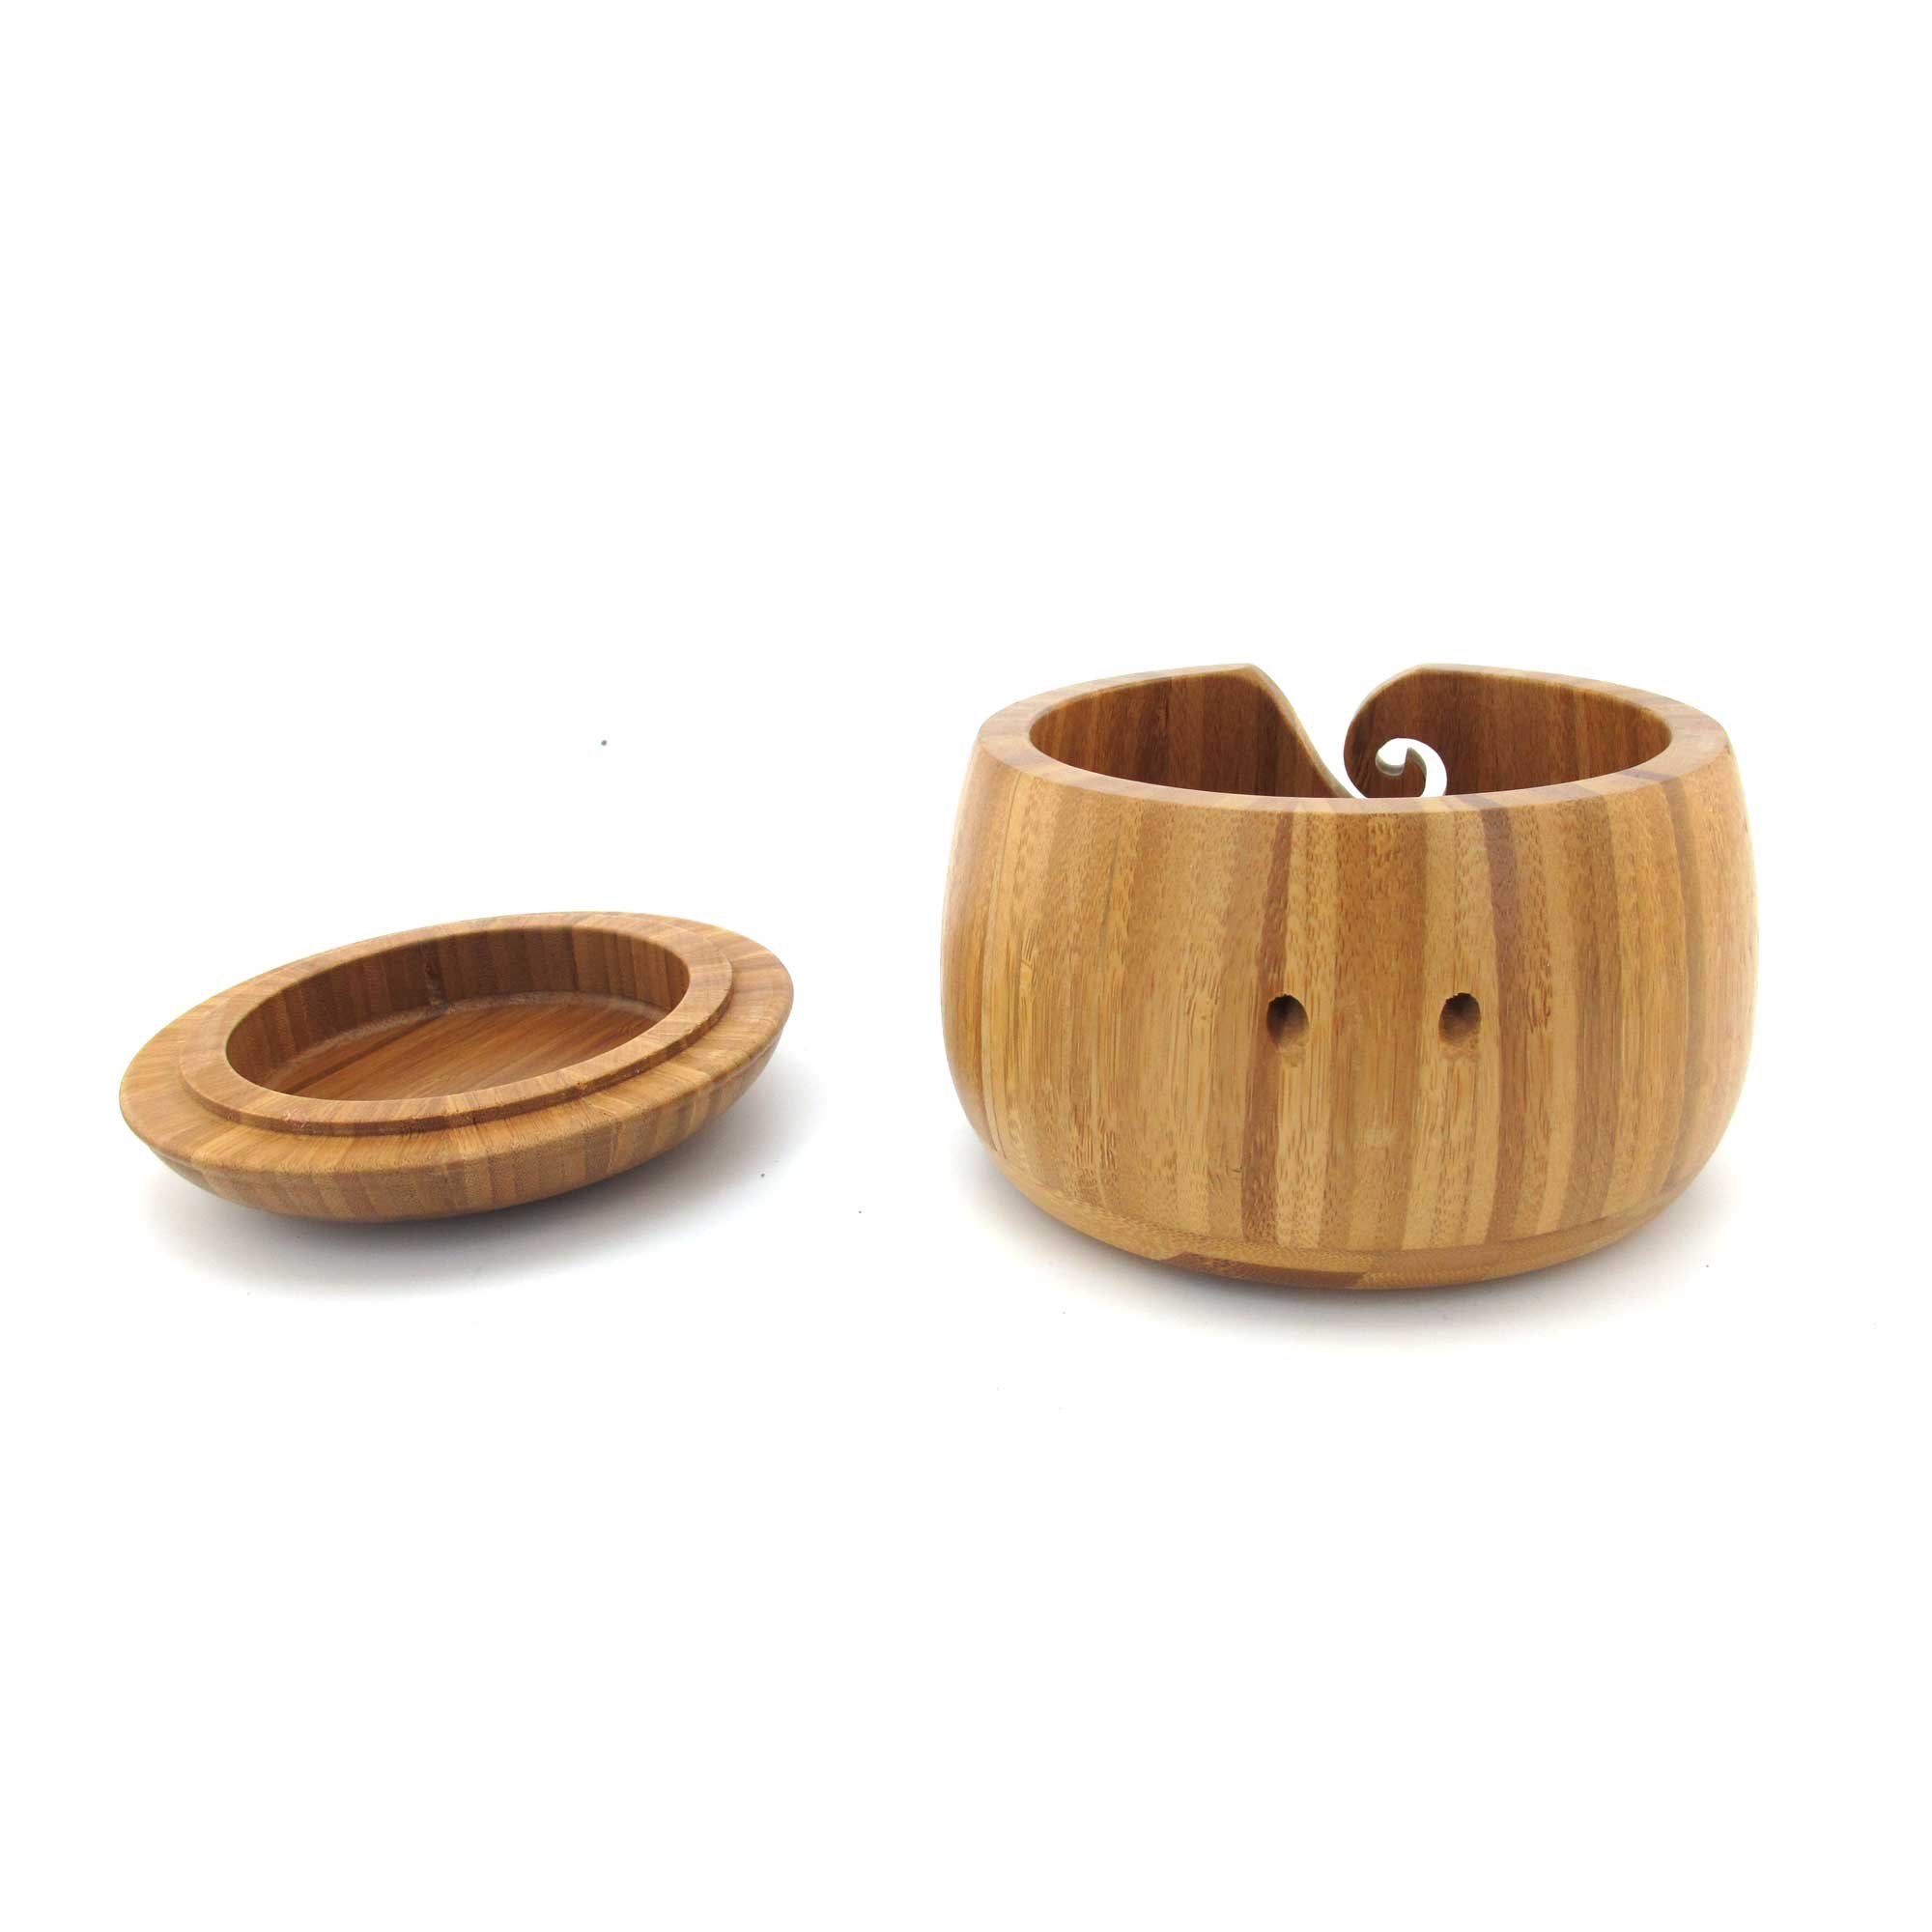 BambooMN Brand - Bamboo Yarn Bowl with Removable Lid -Yarn Holder for Knitting and Crochet - Carbonized Brown Bowl - 3 Pieces by BambooMN (Image #3)